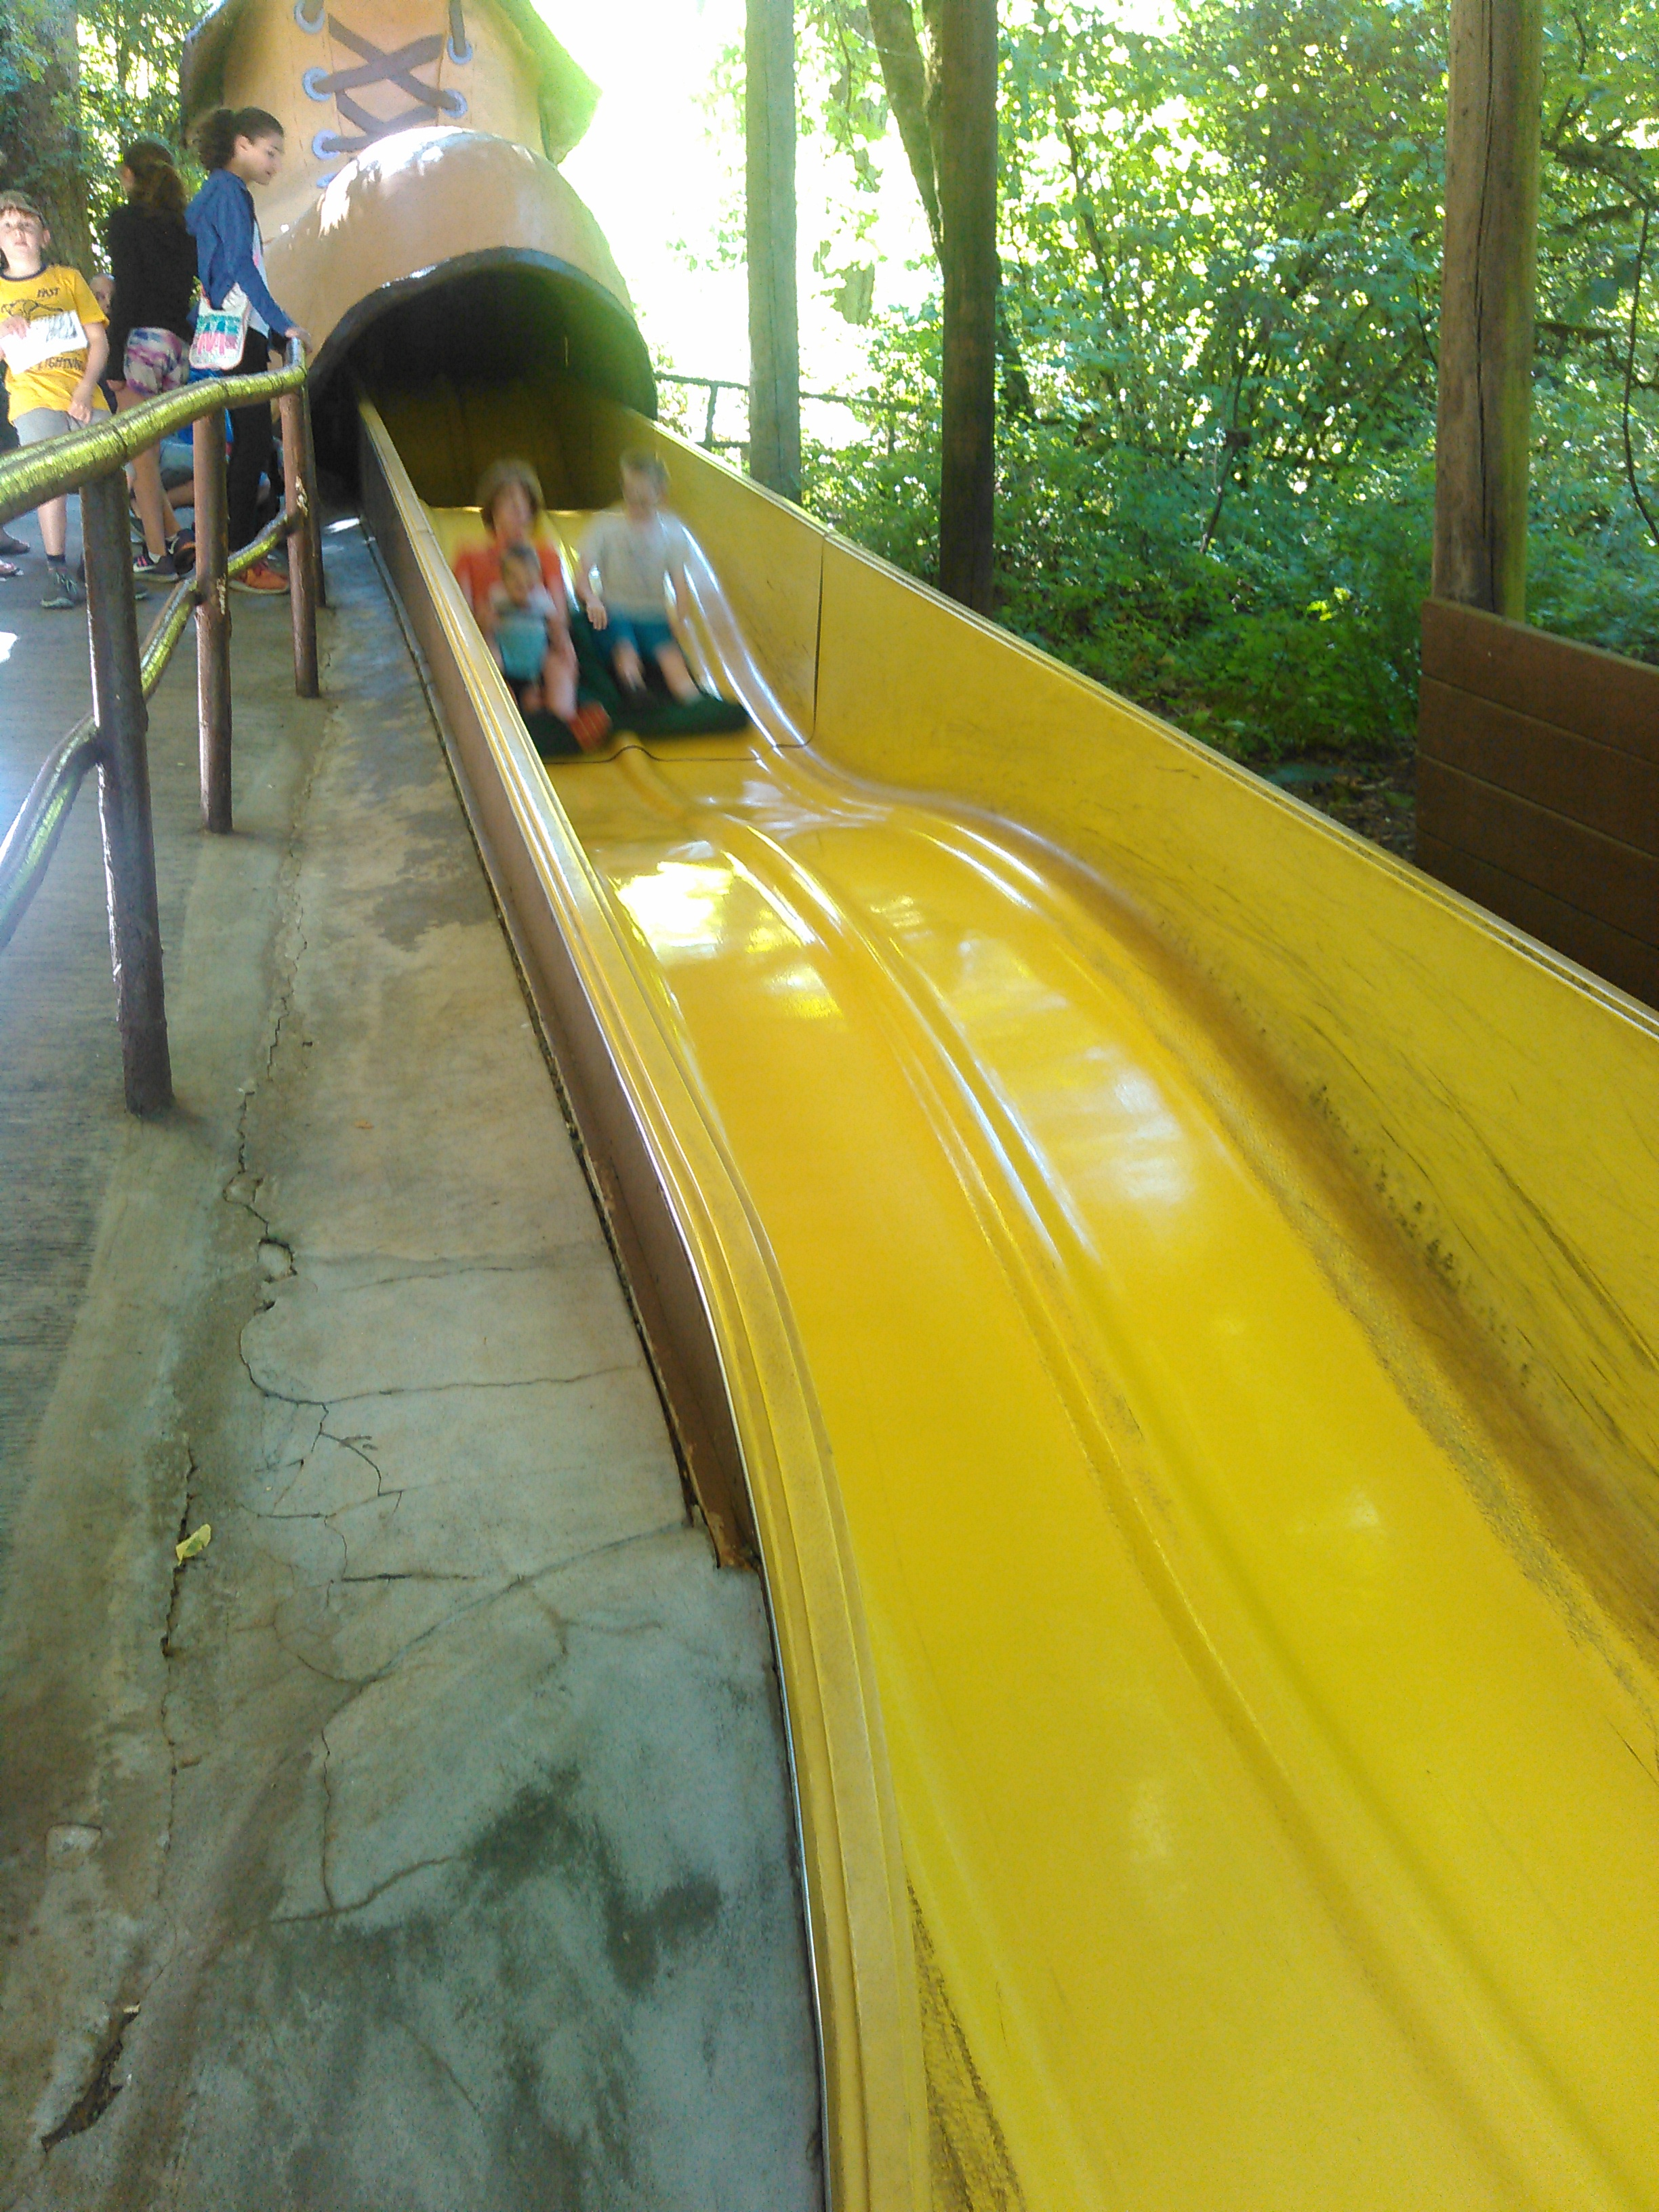 The shoe is a giant slide